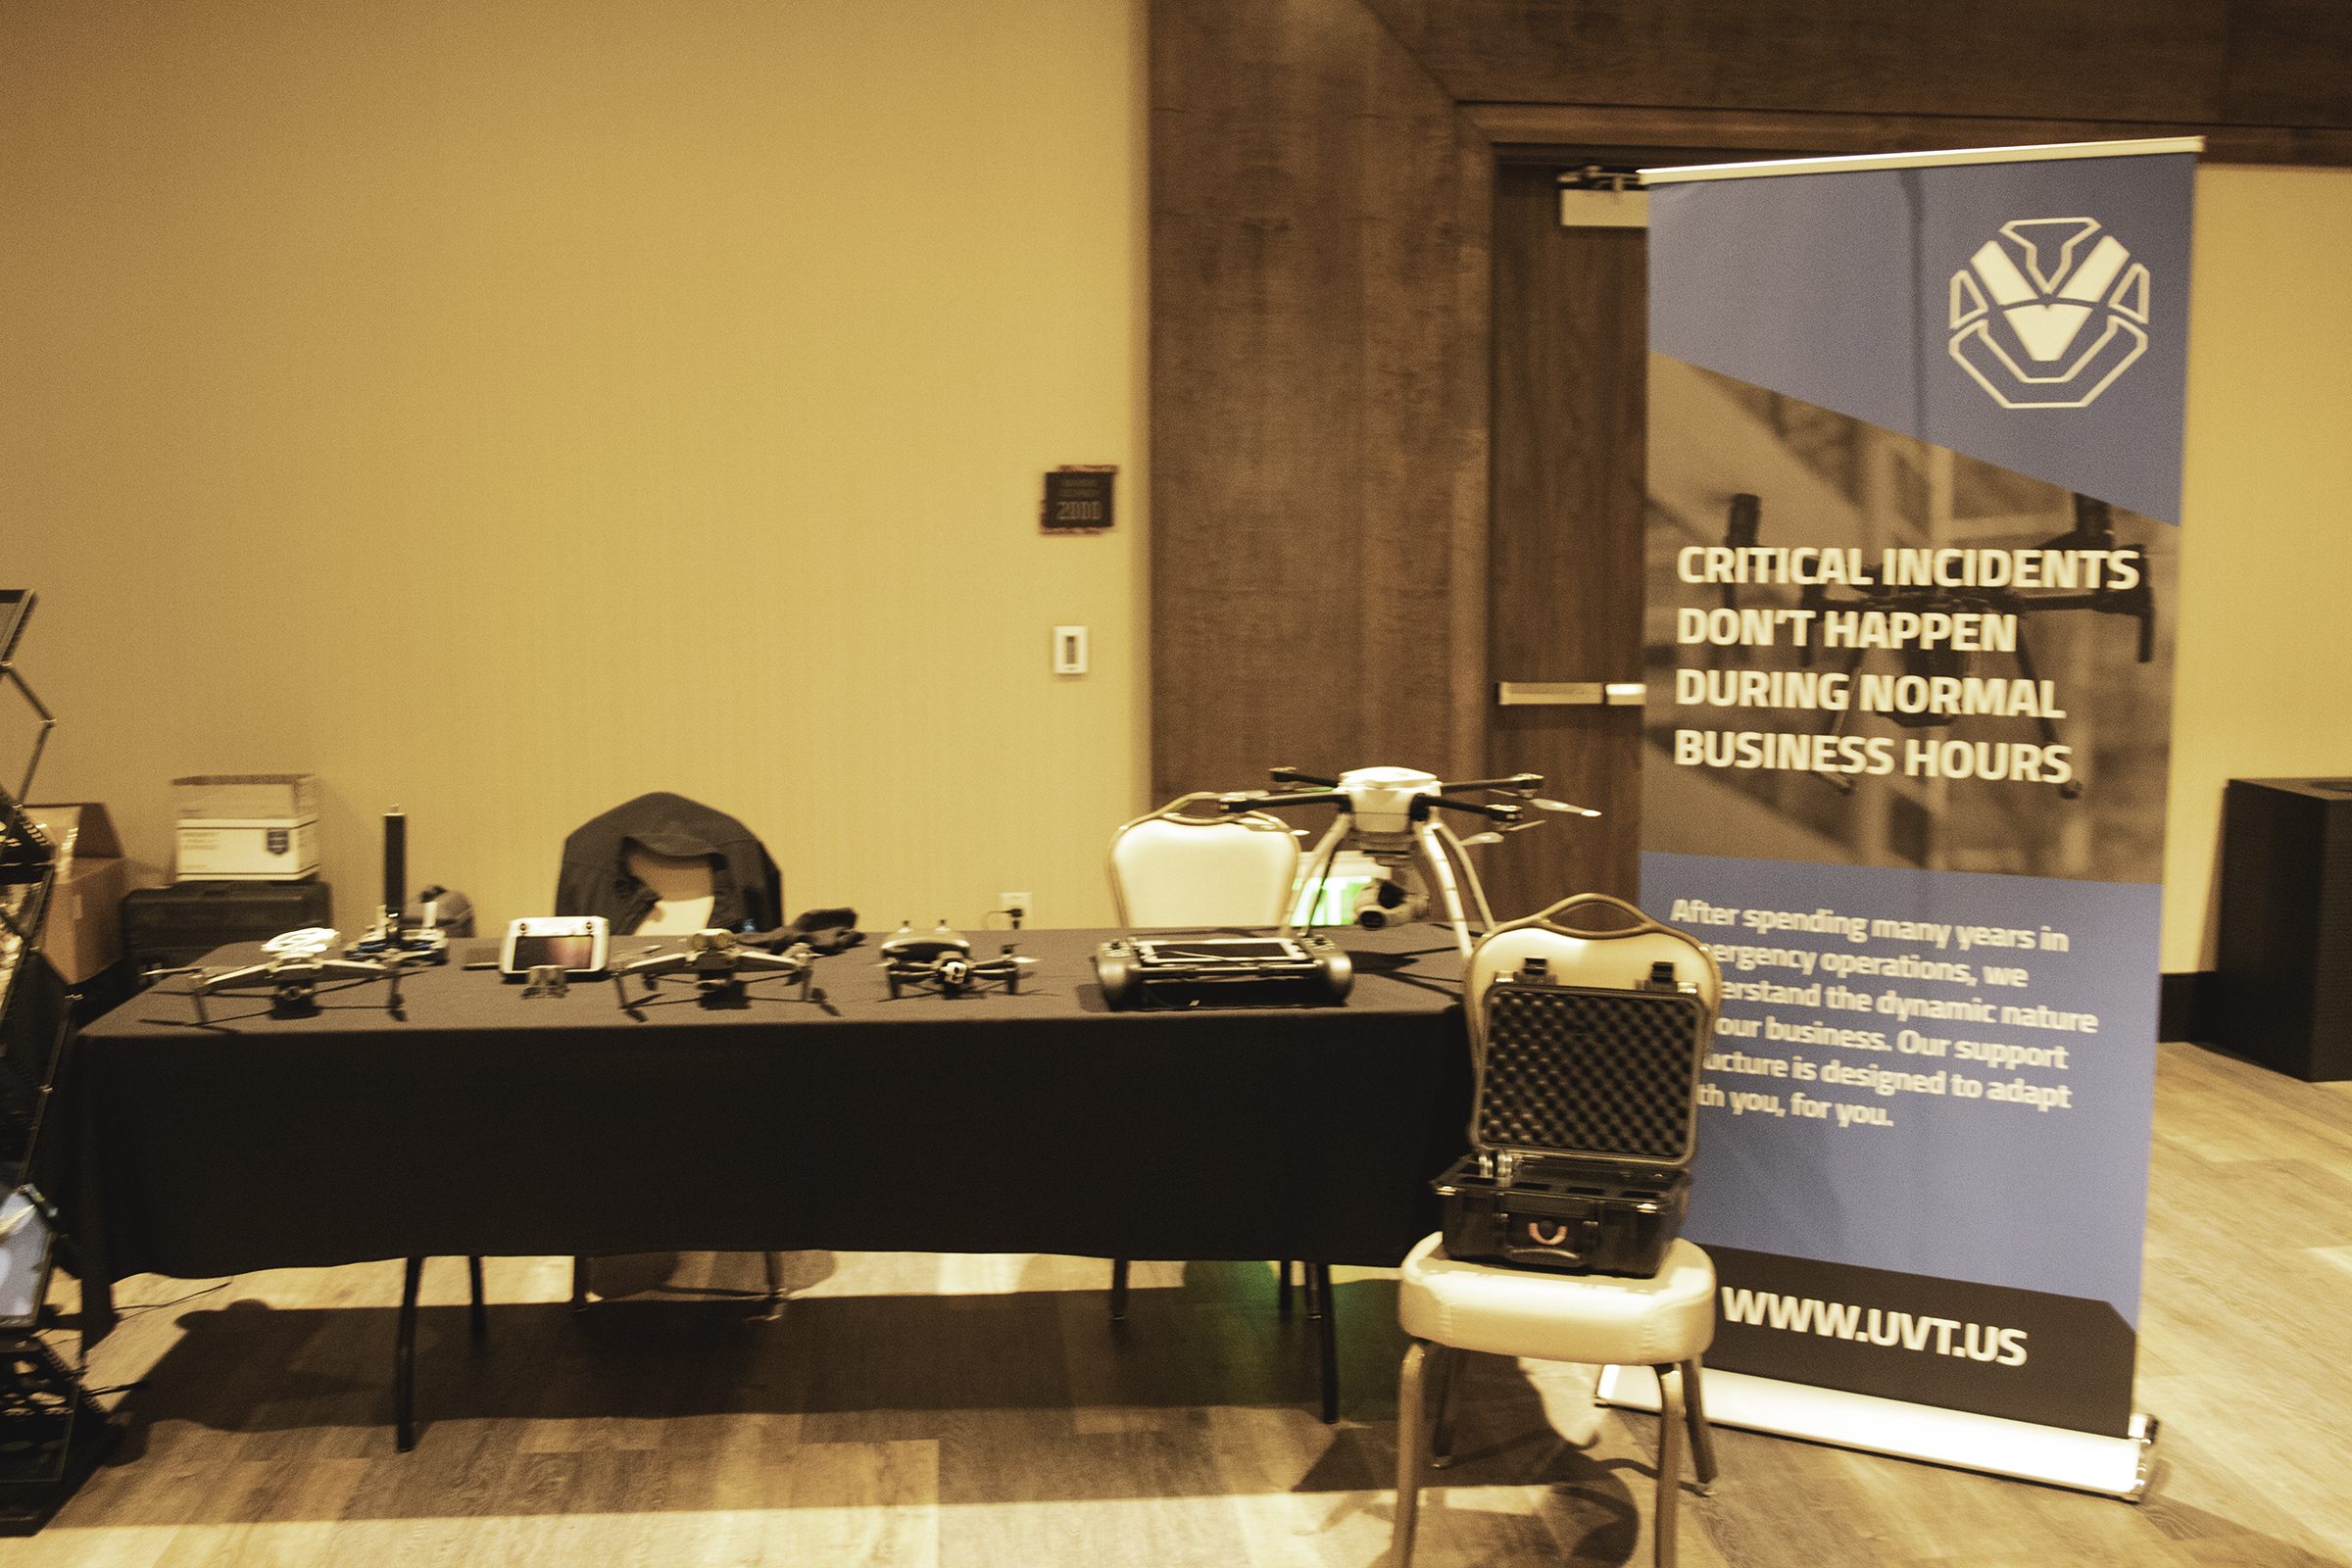 drone conference picture showing Unmanned Vehicle Technologies booth